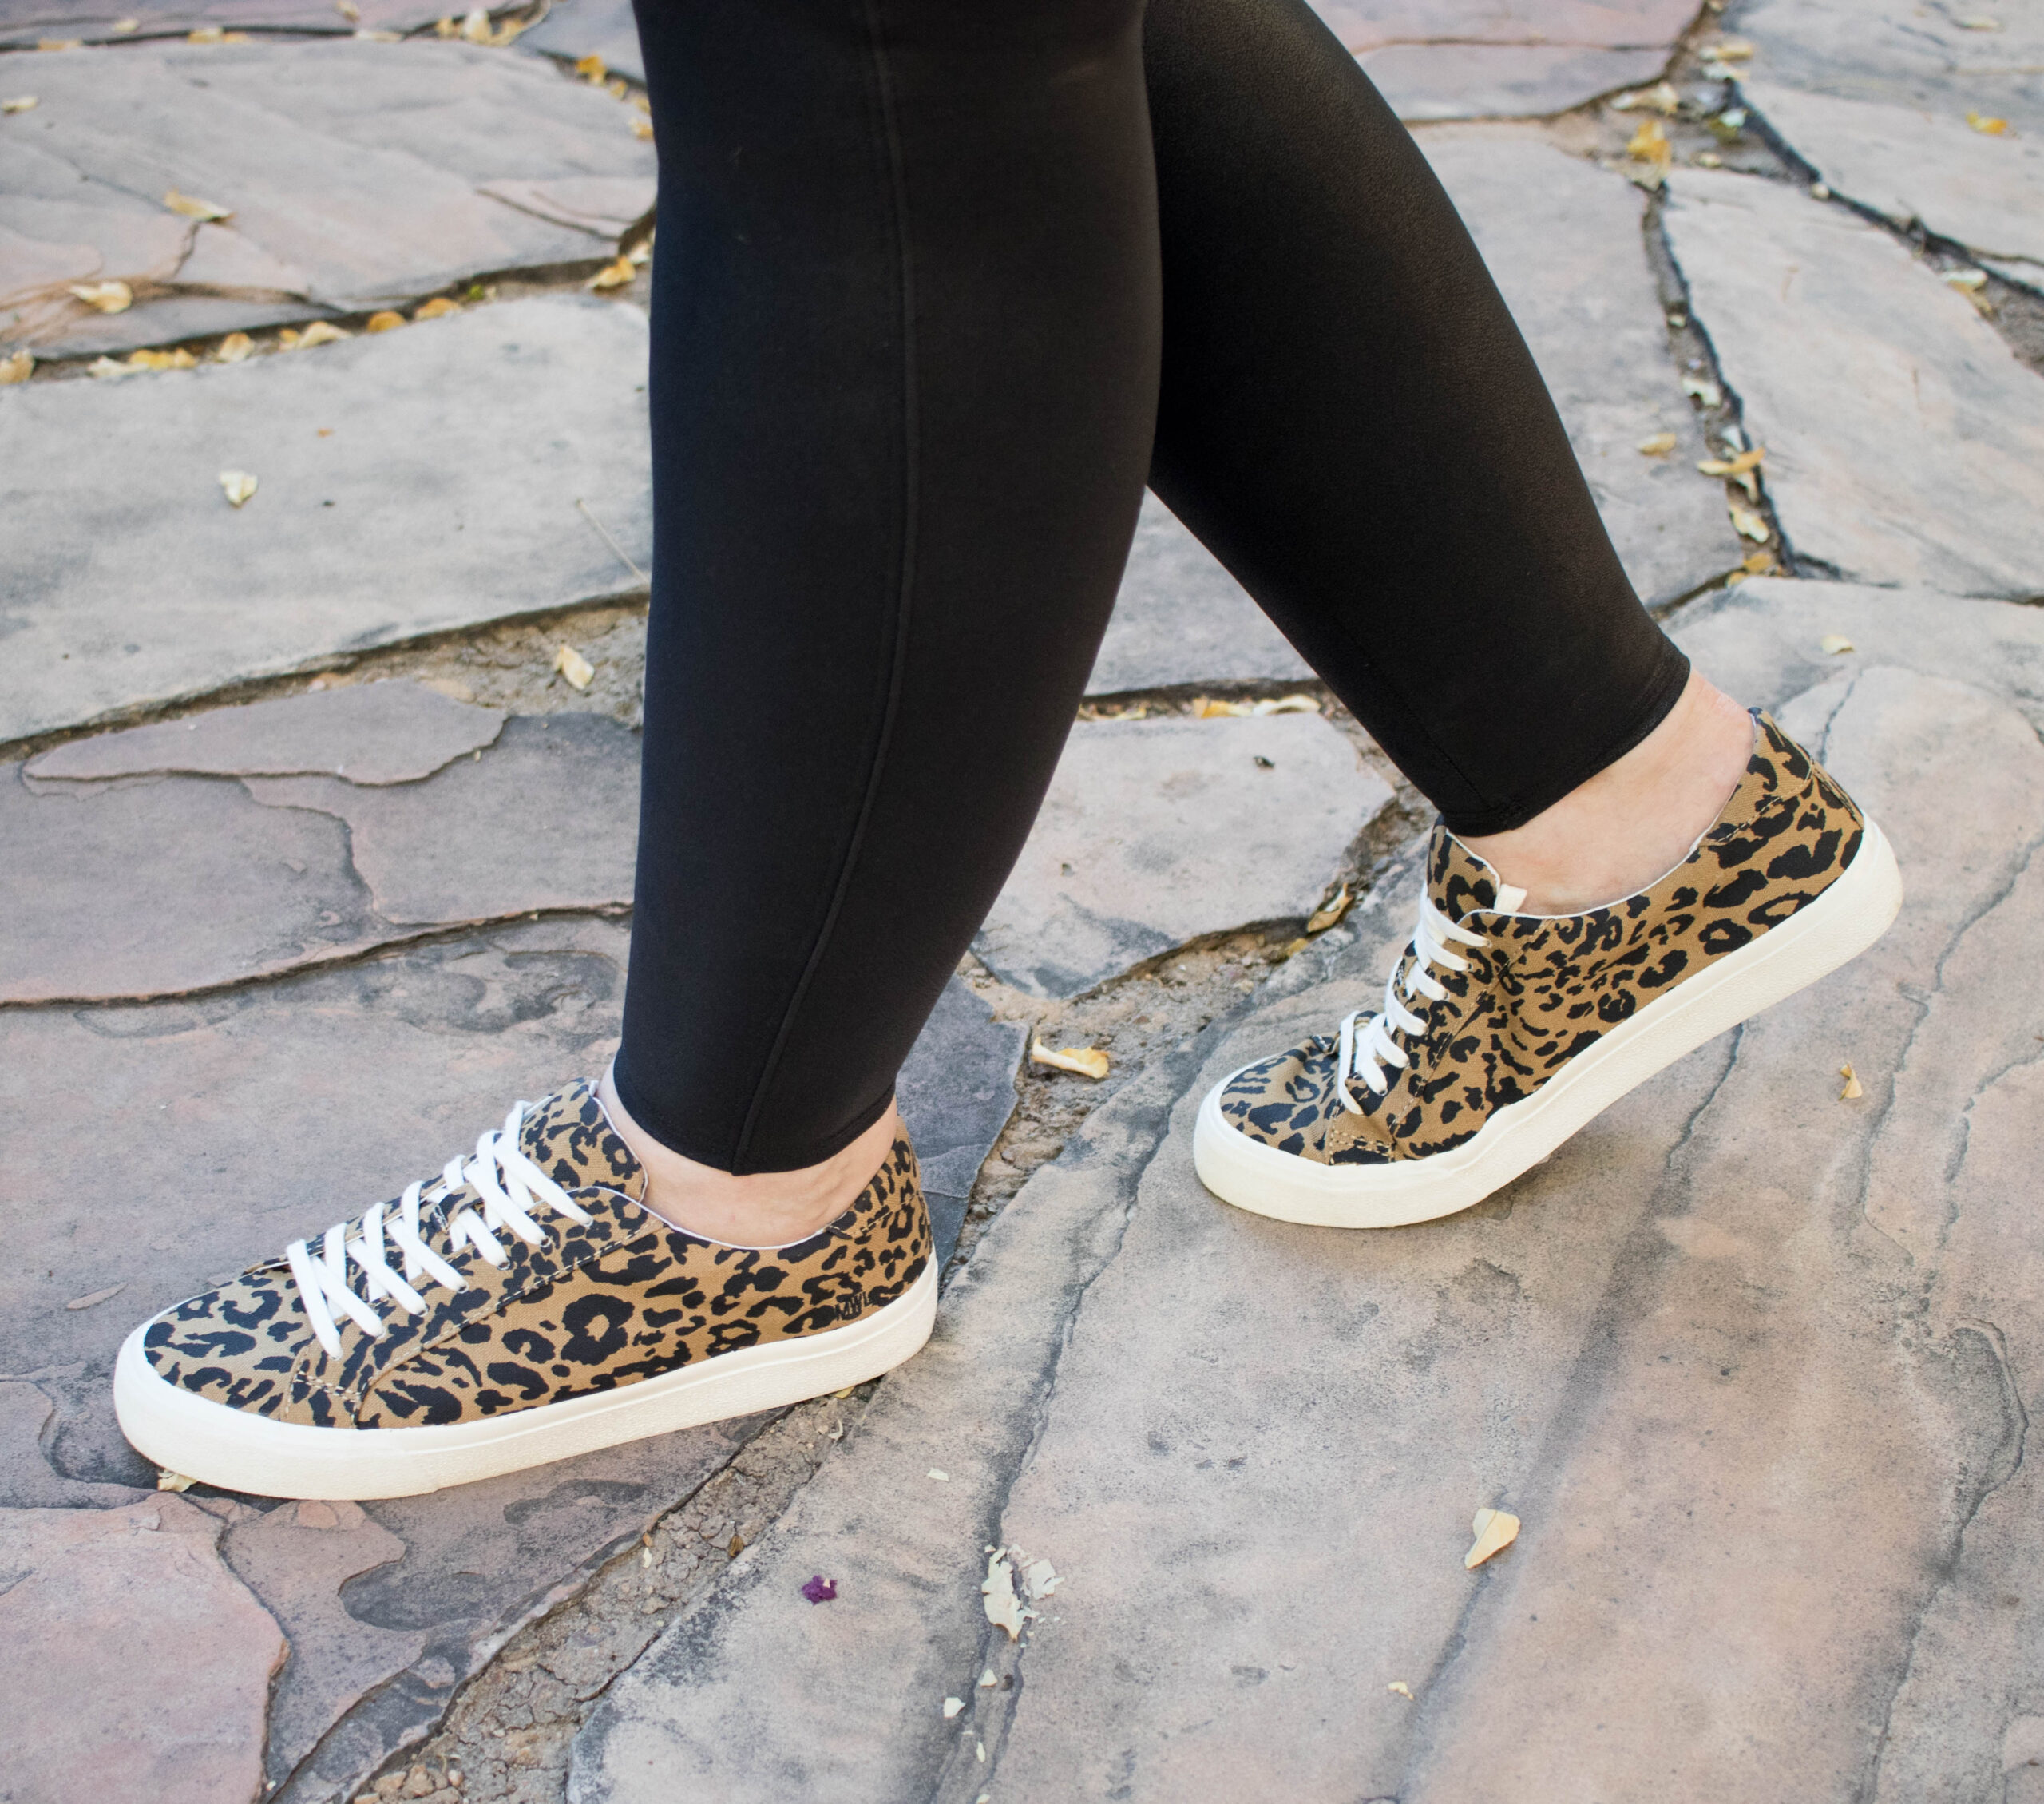 madewell Leopard sneakers #madewell #everydaymadewell #leopardshoes